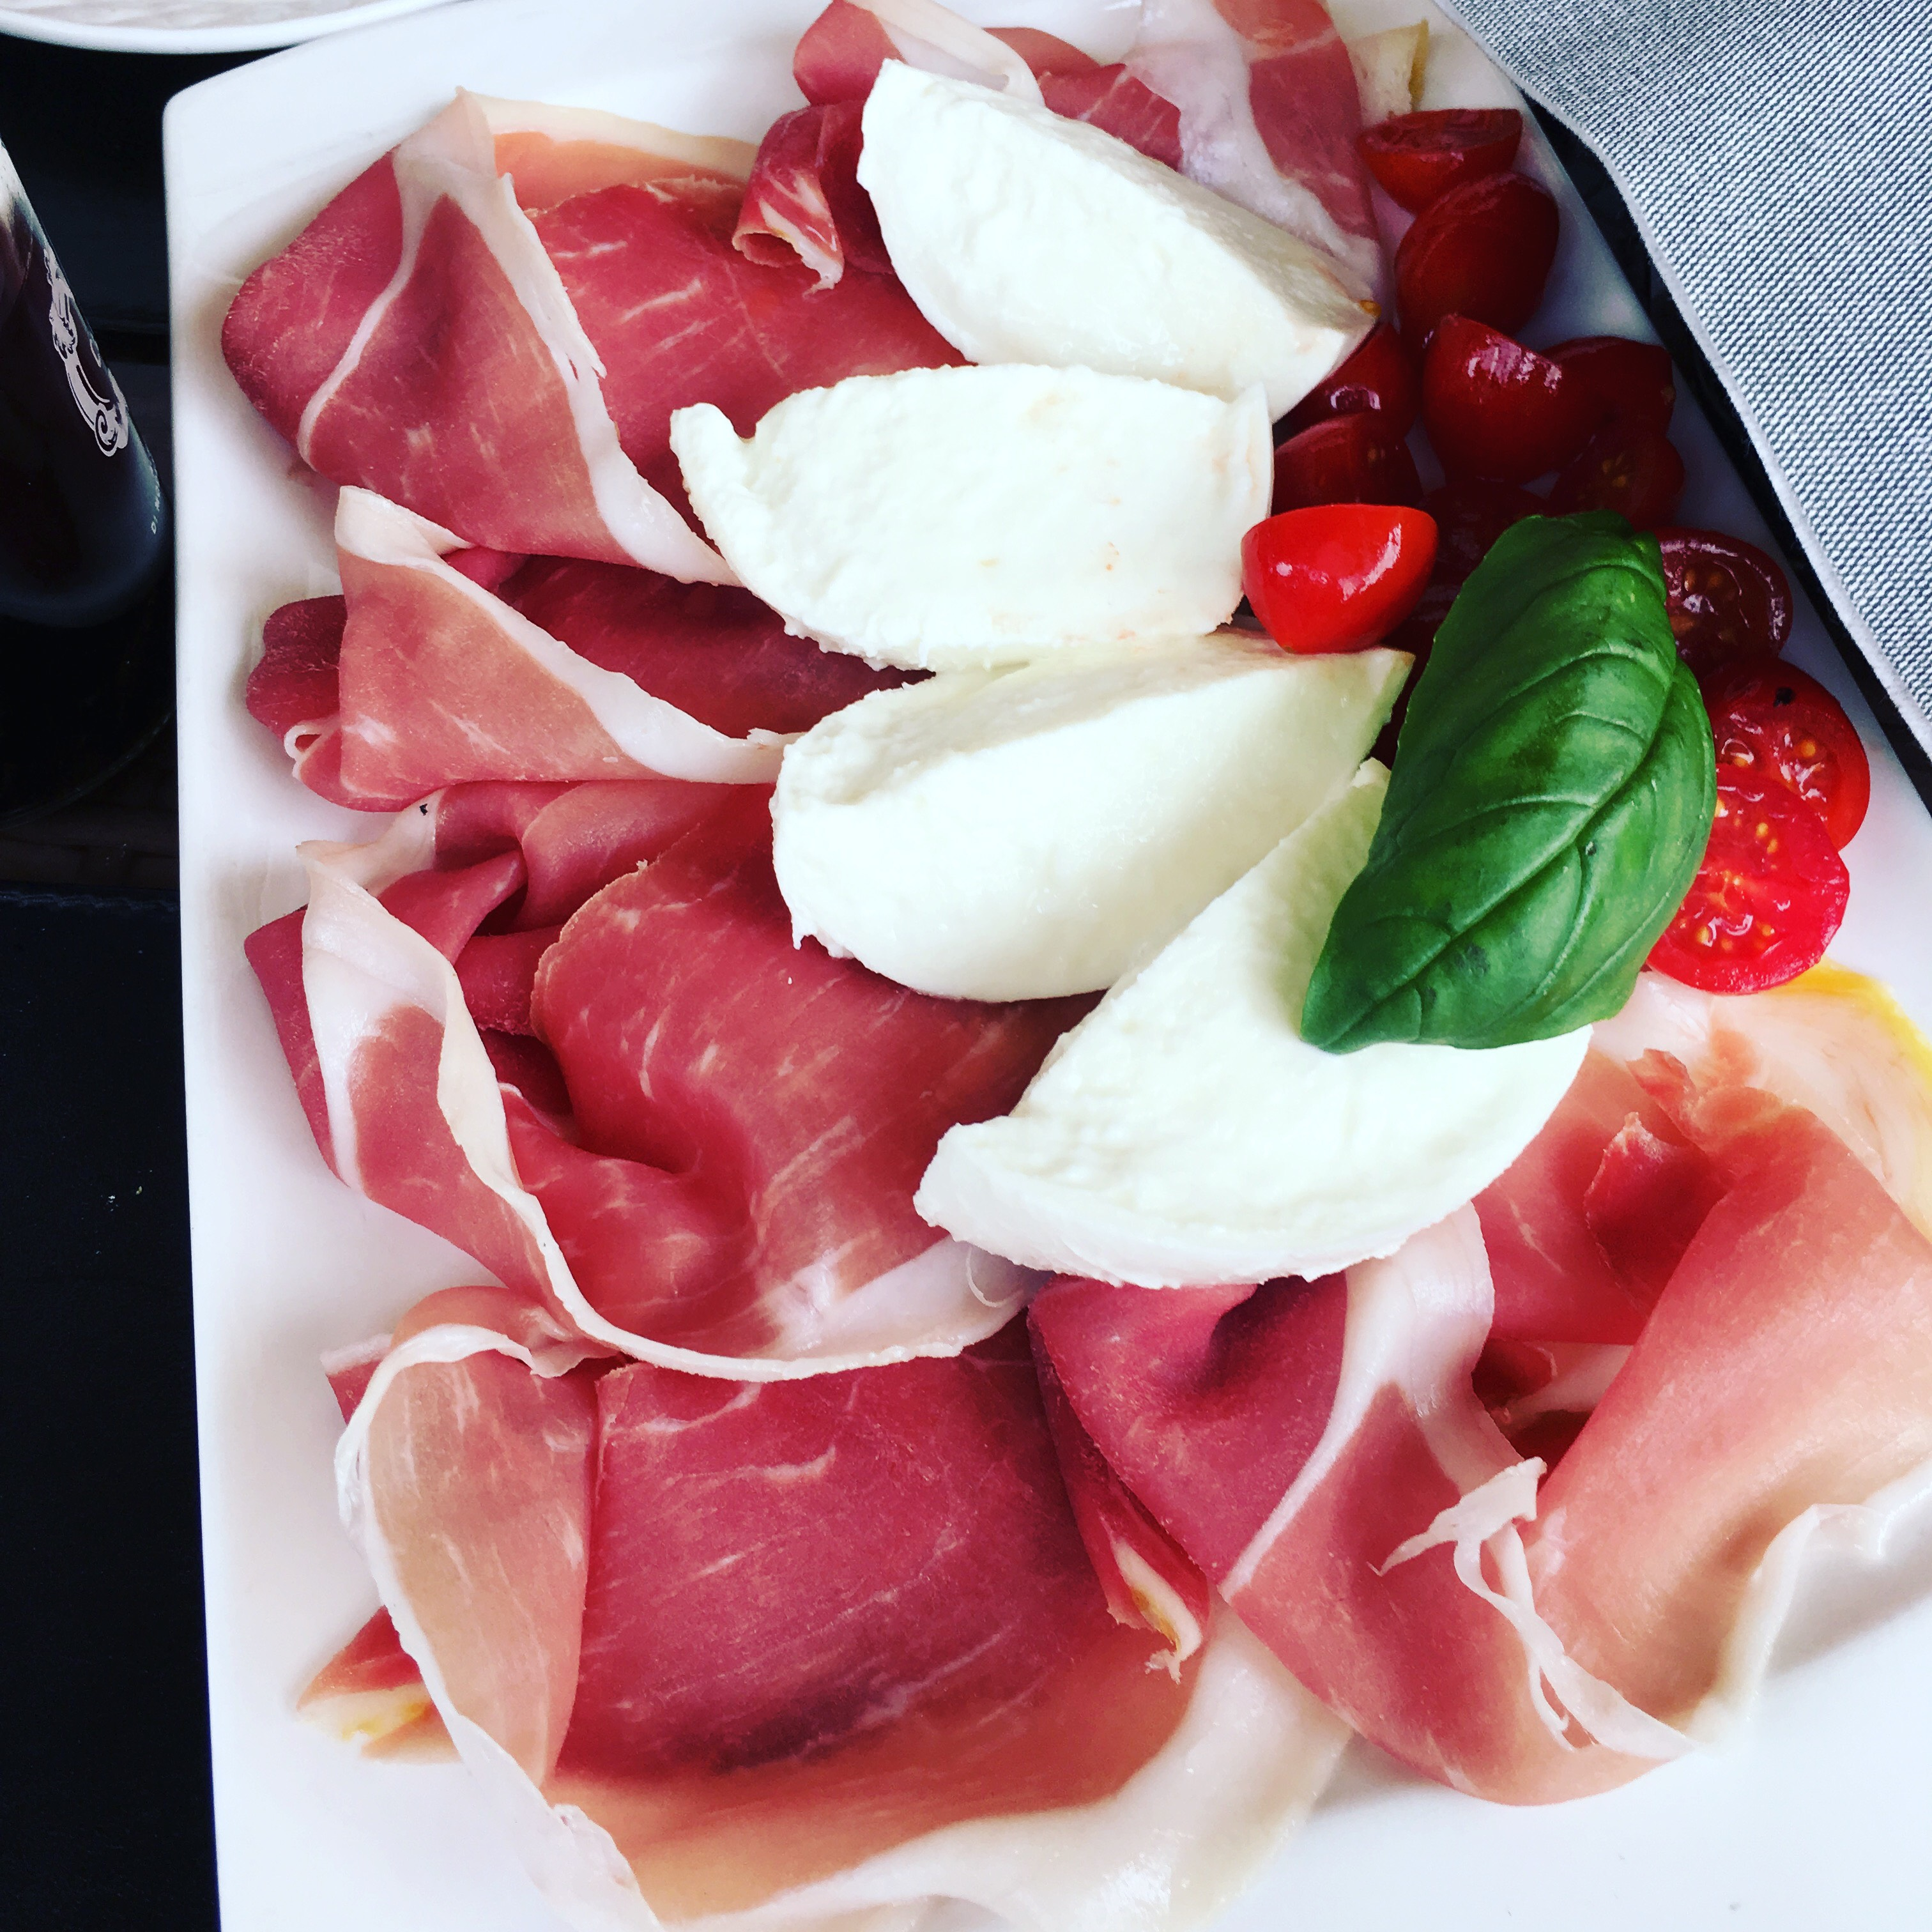 When in Italy…Eat like the Italians